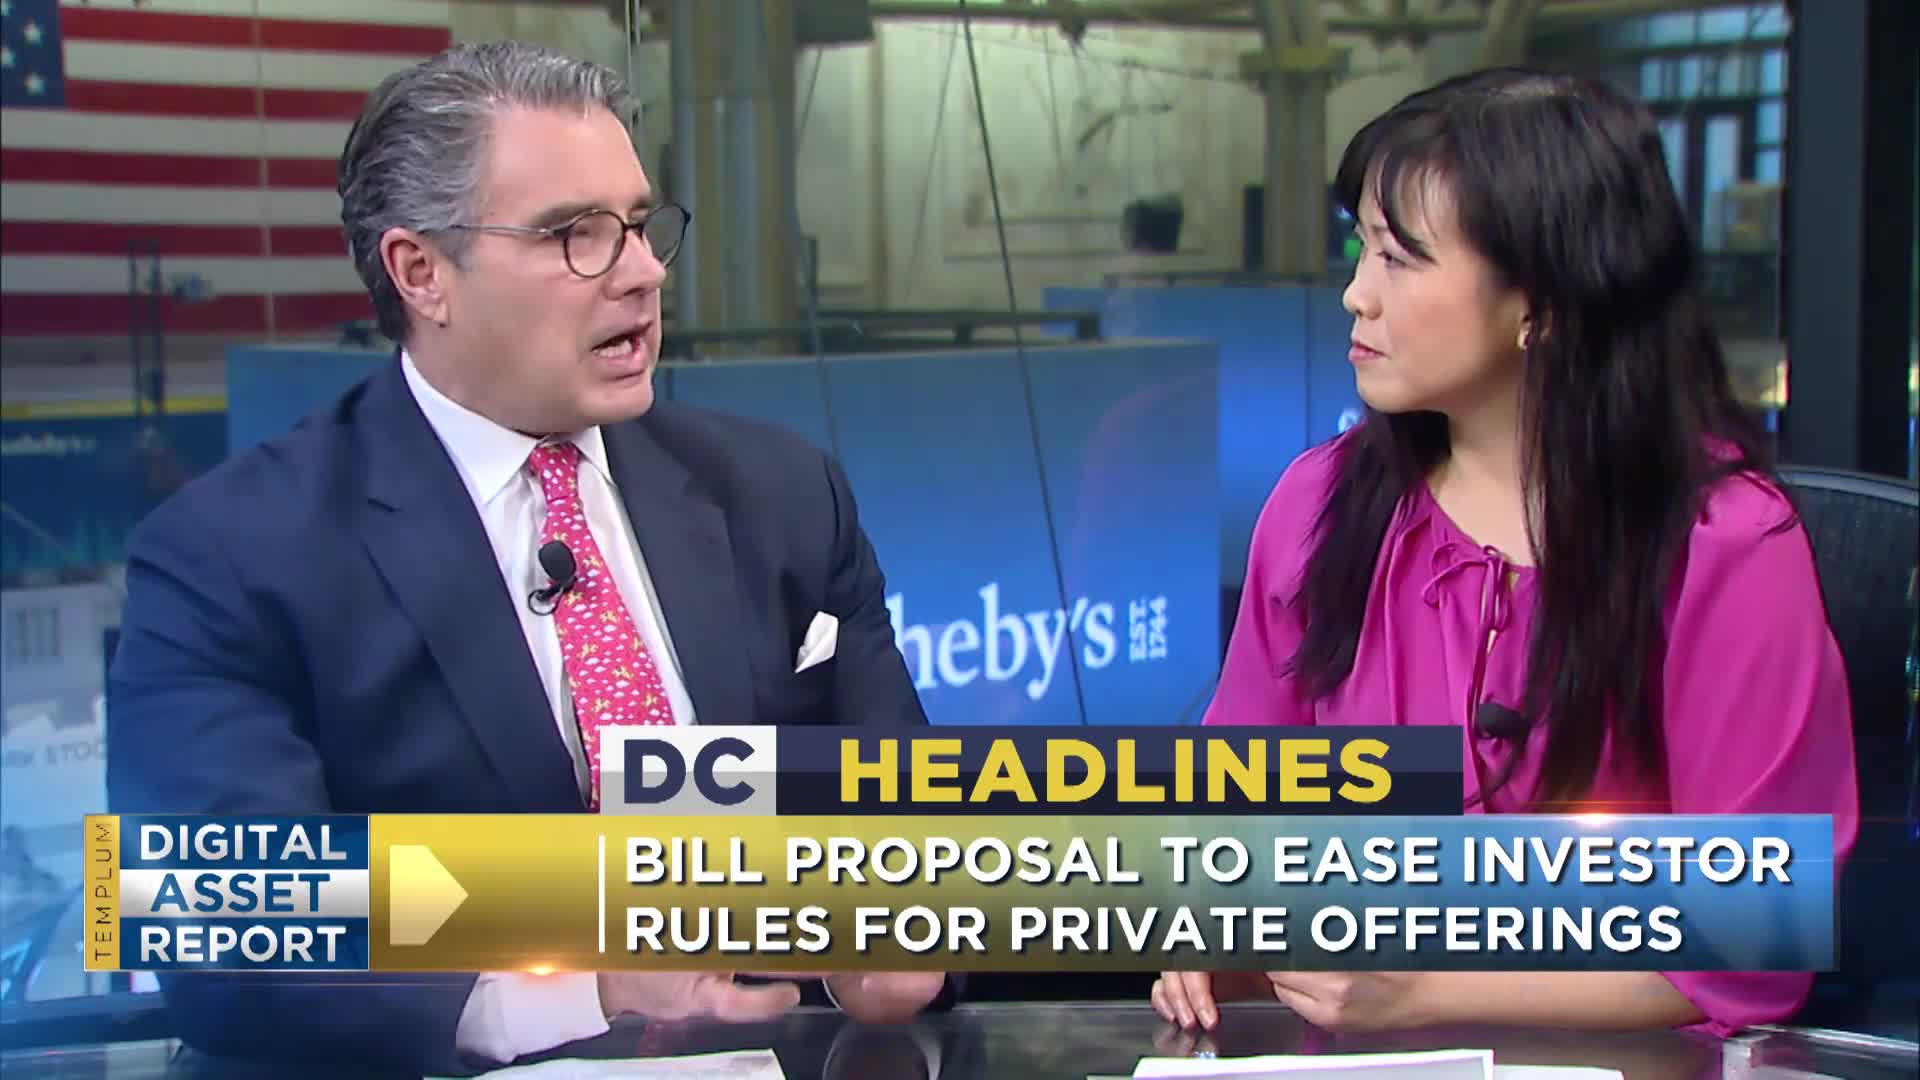 DC_HEADLINES_Proposal_to_Ease_Investor_Rules_For_Private_Offerings.mp4